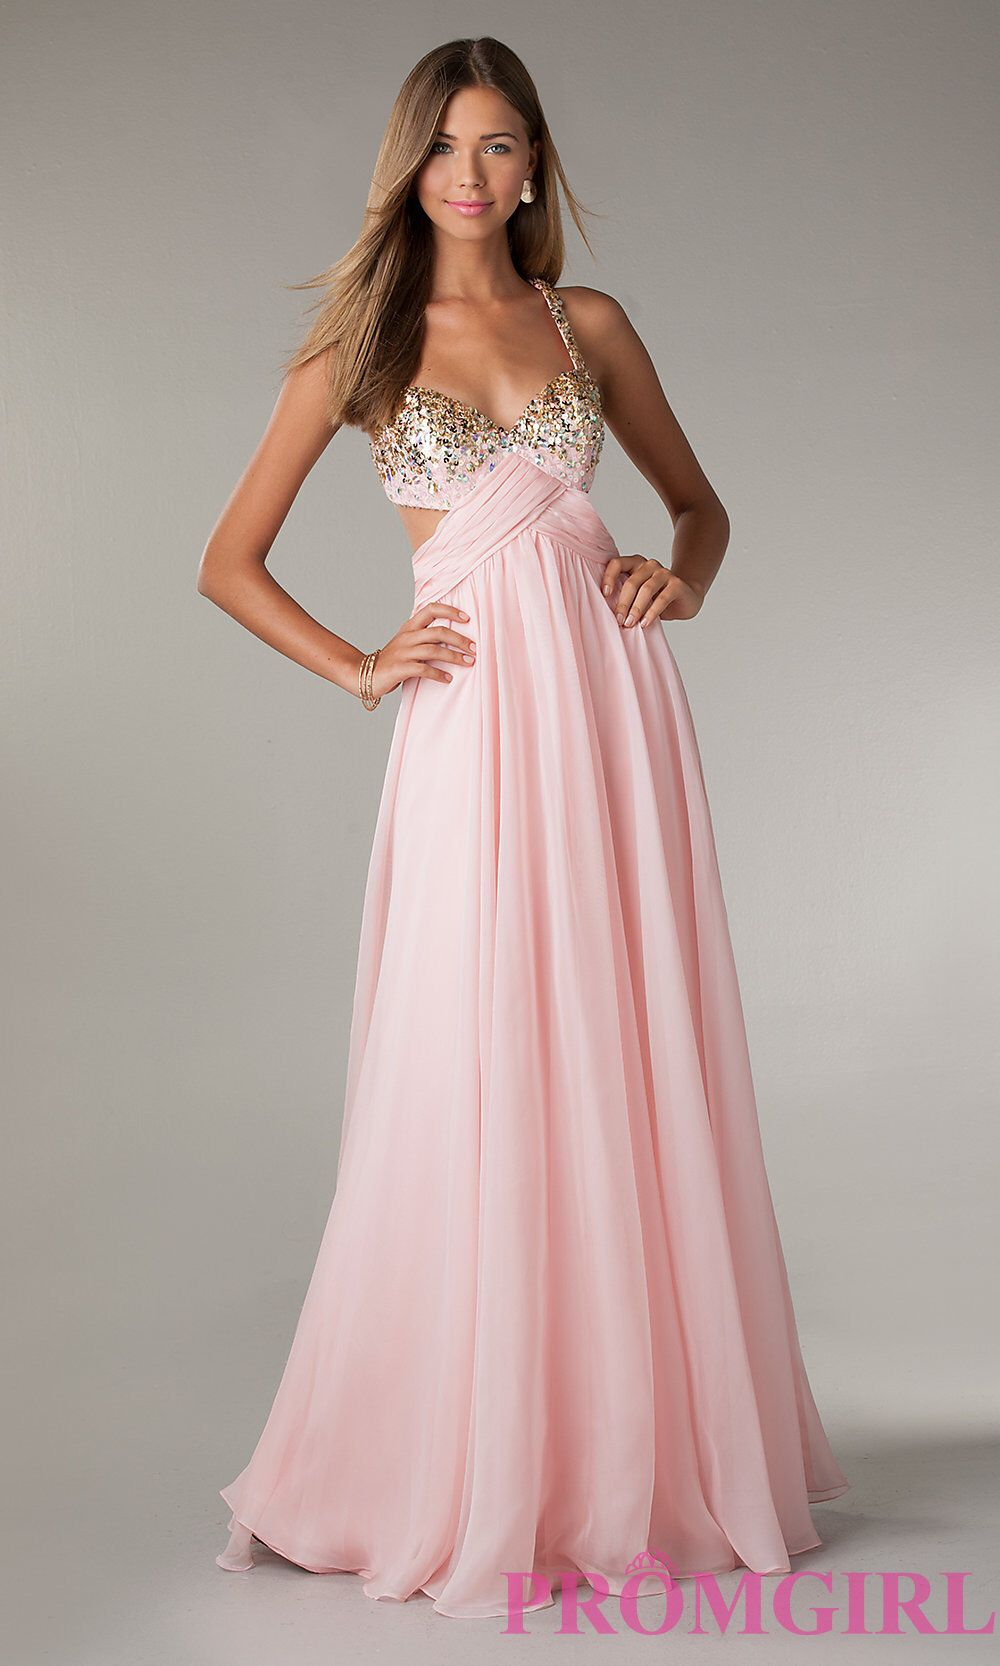 Pin by melissa on weddings and proms pinterest prom and wedding